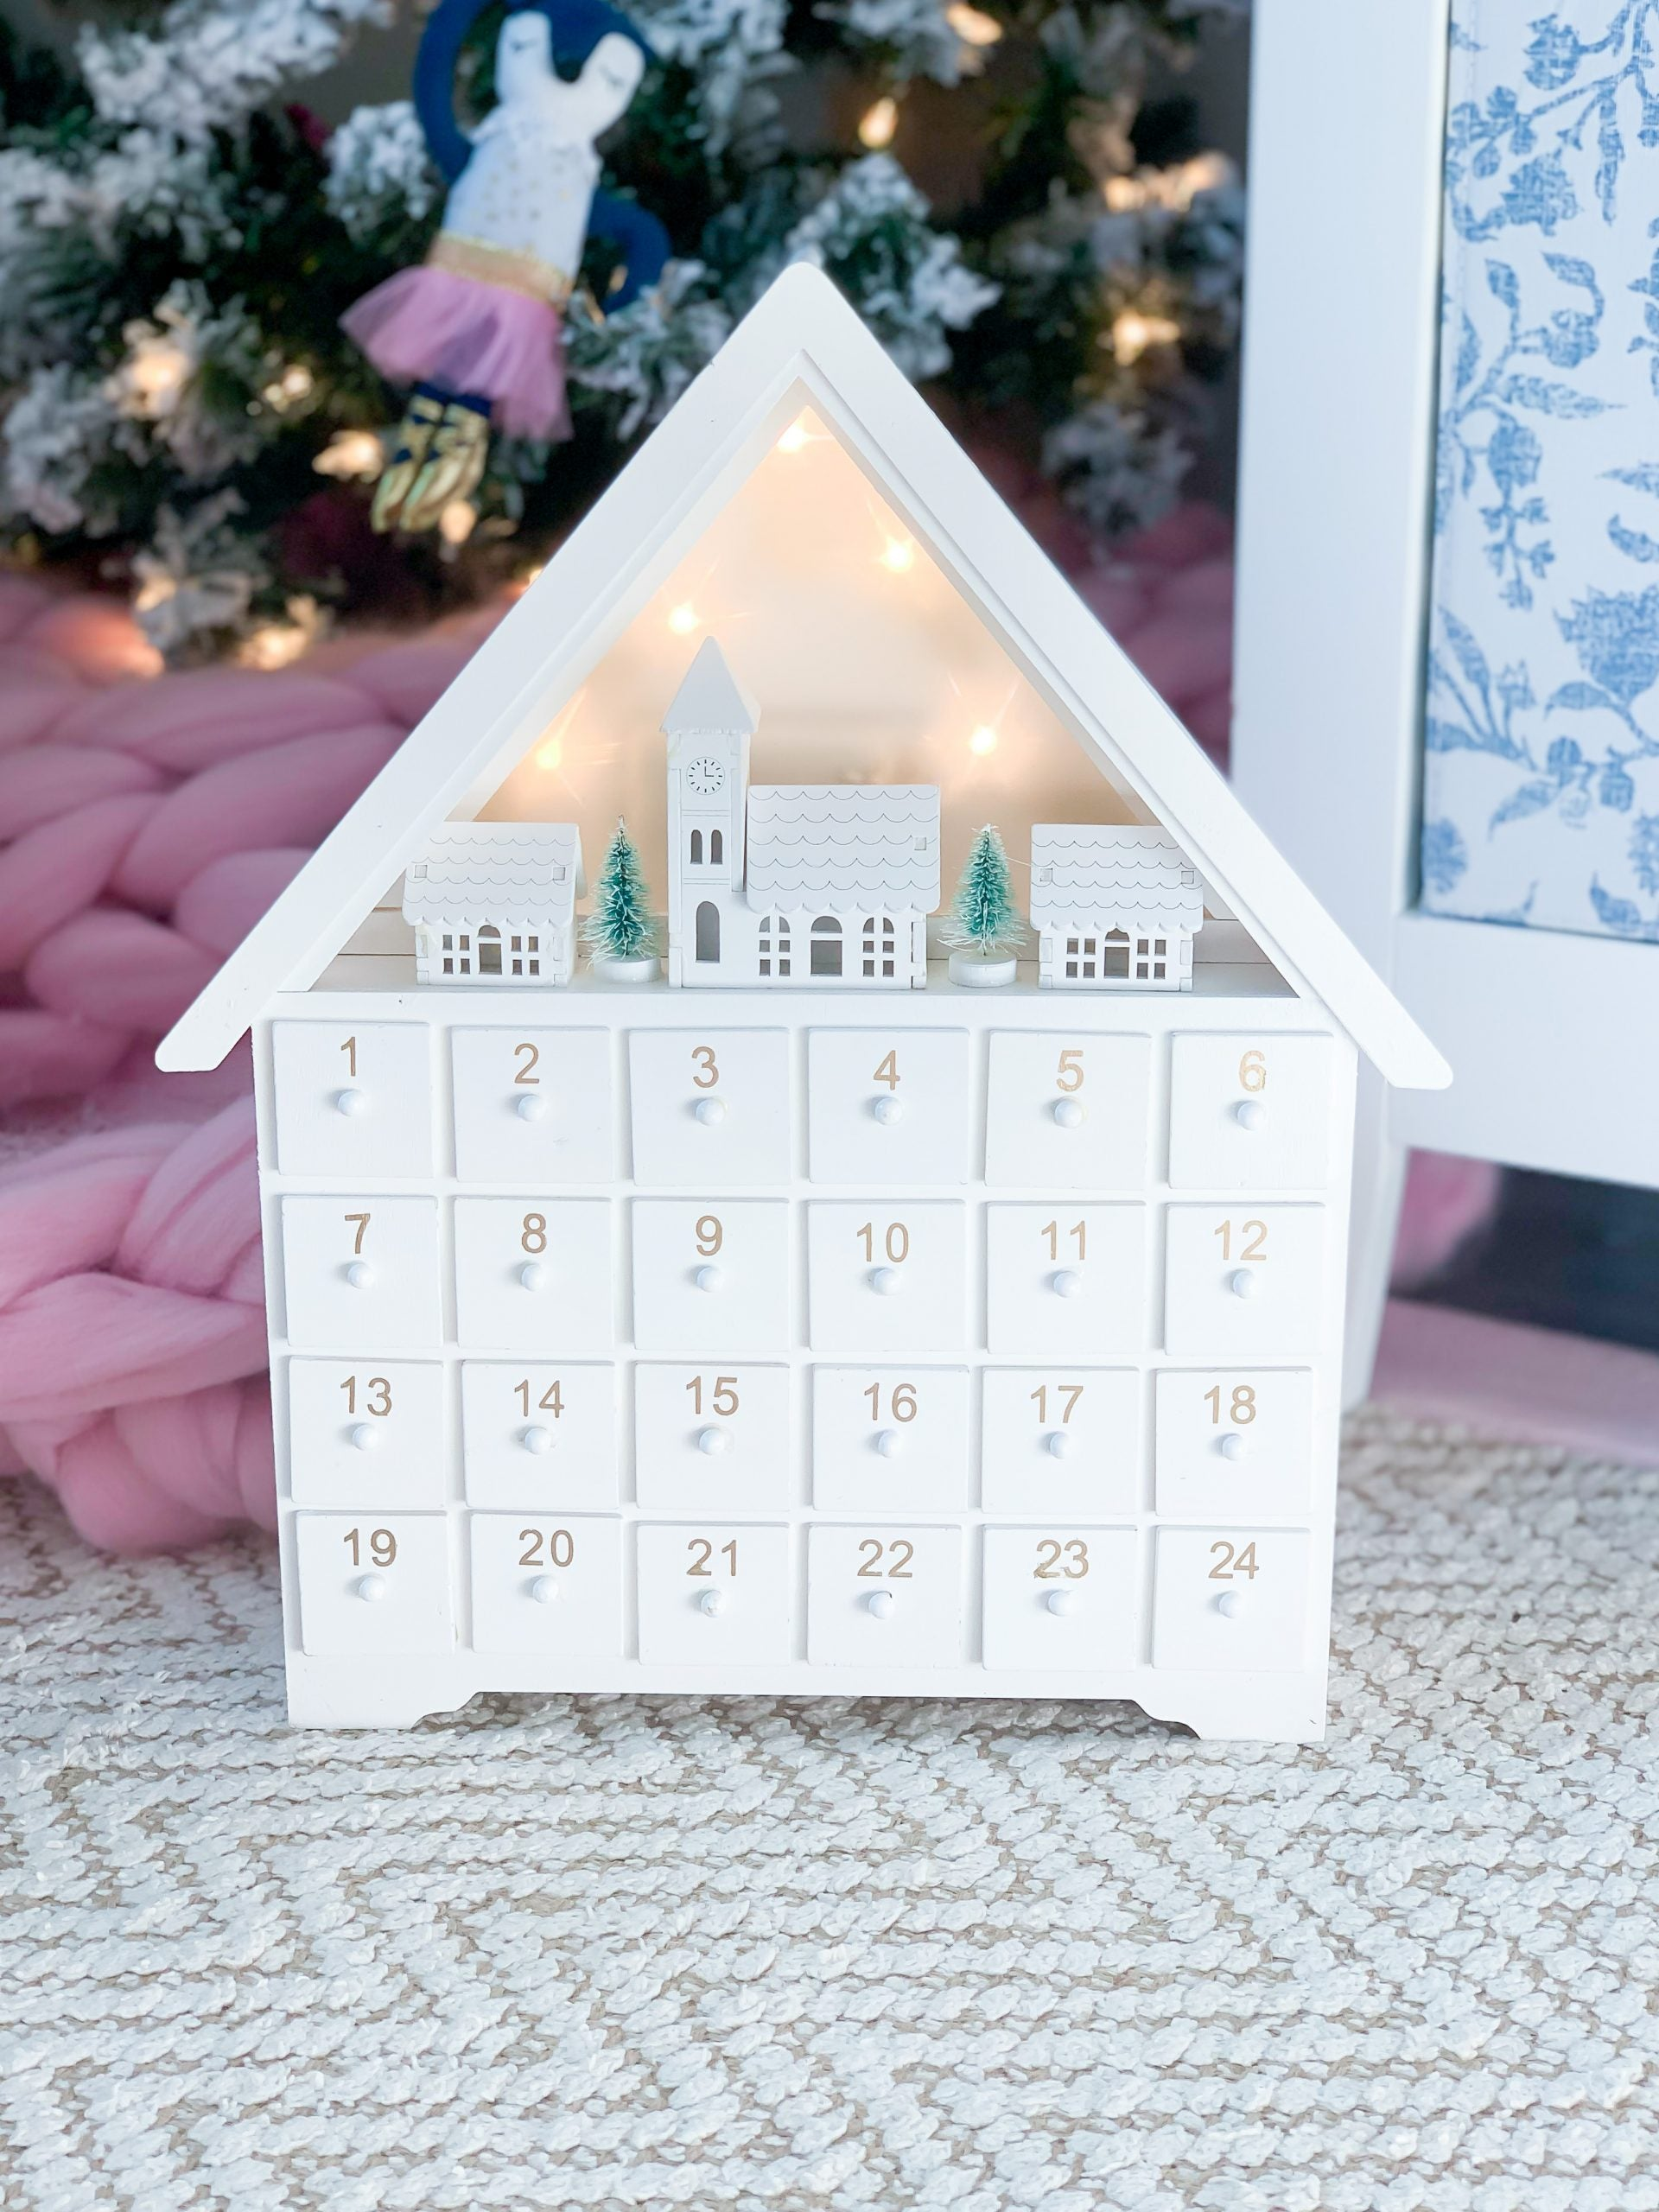 Acts of Kindness Advent Calendar: Create Your Own